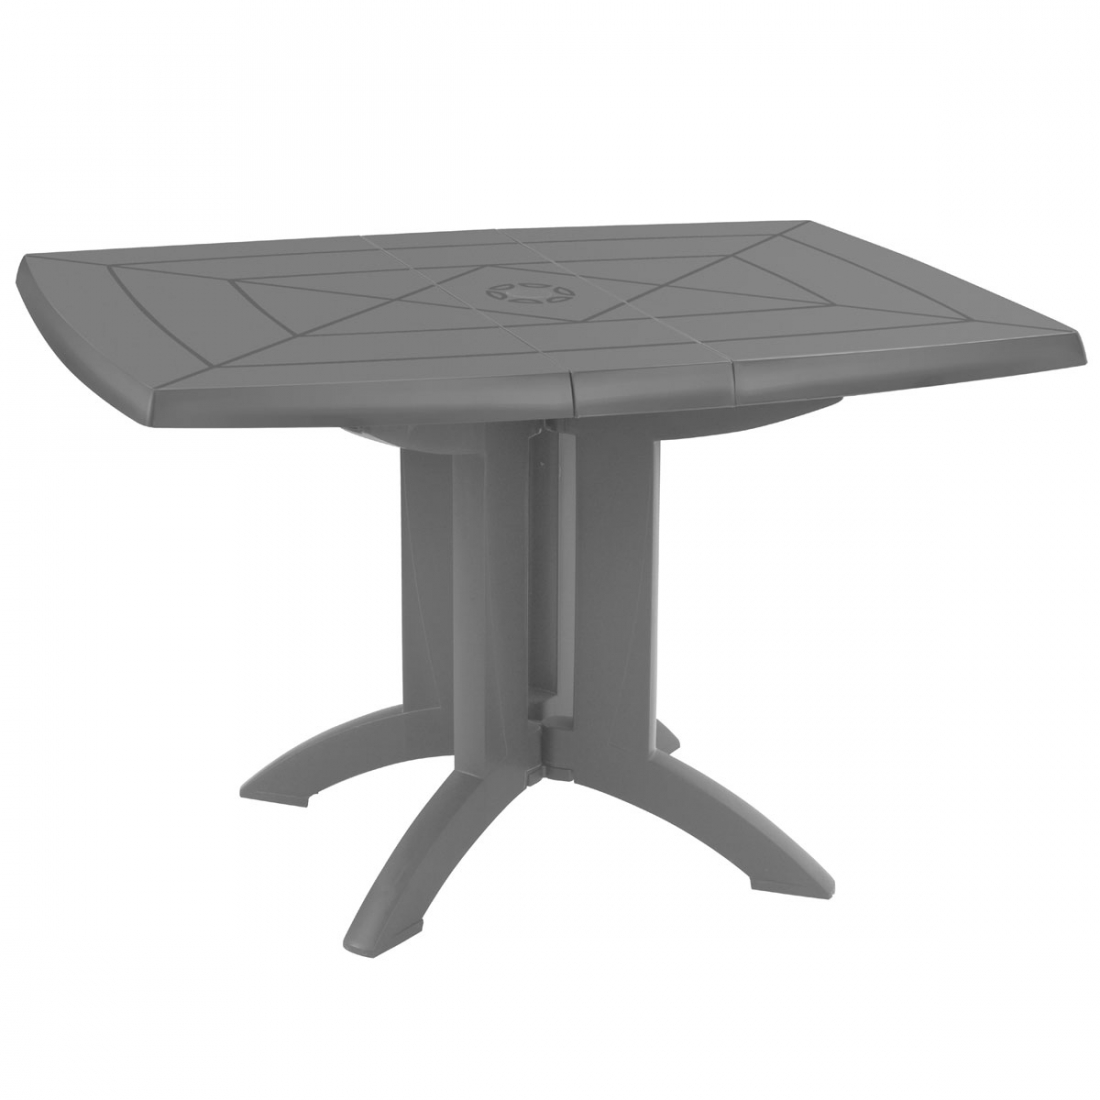 Table de jardin pliante vega grosfillex for Table jardin pliante